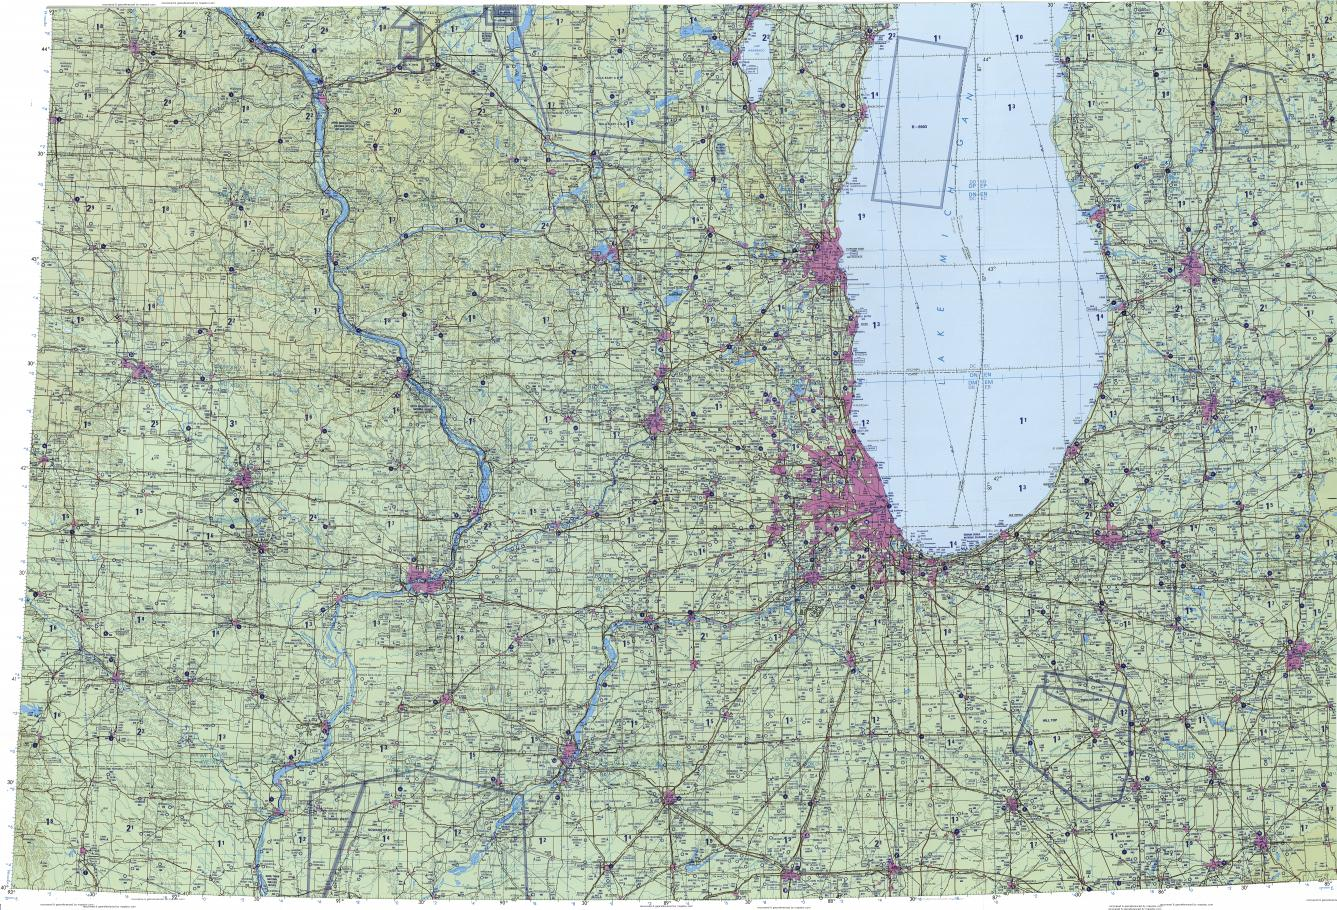 Download topographic map in area of Chicago, Milwaukee, Grand